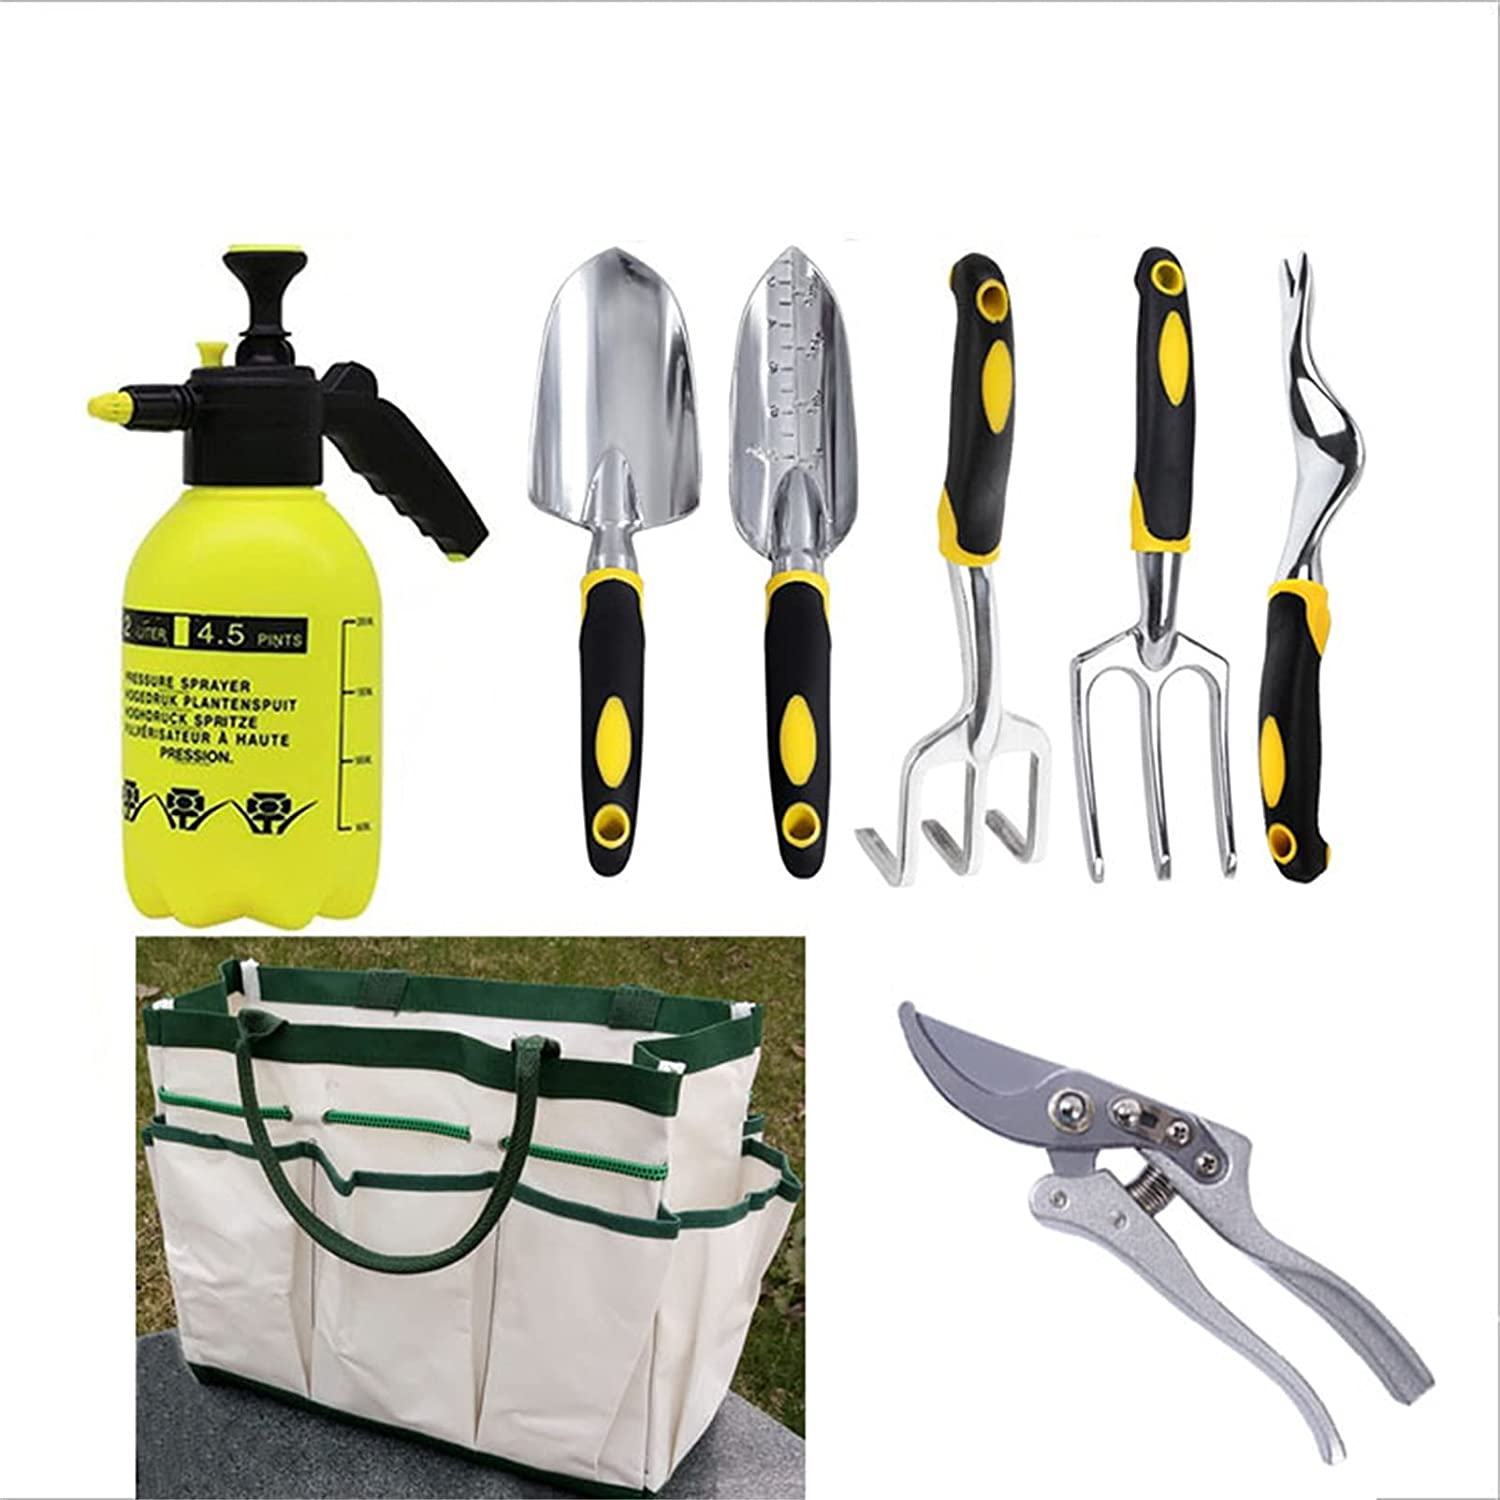 ZHUAN Garden Tools Same day shipping Set 7 Pieces Gardening NEW before selling ☆ Heavy Duty Kit Cast Al